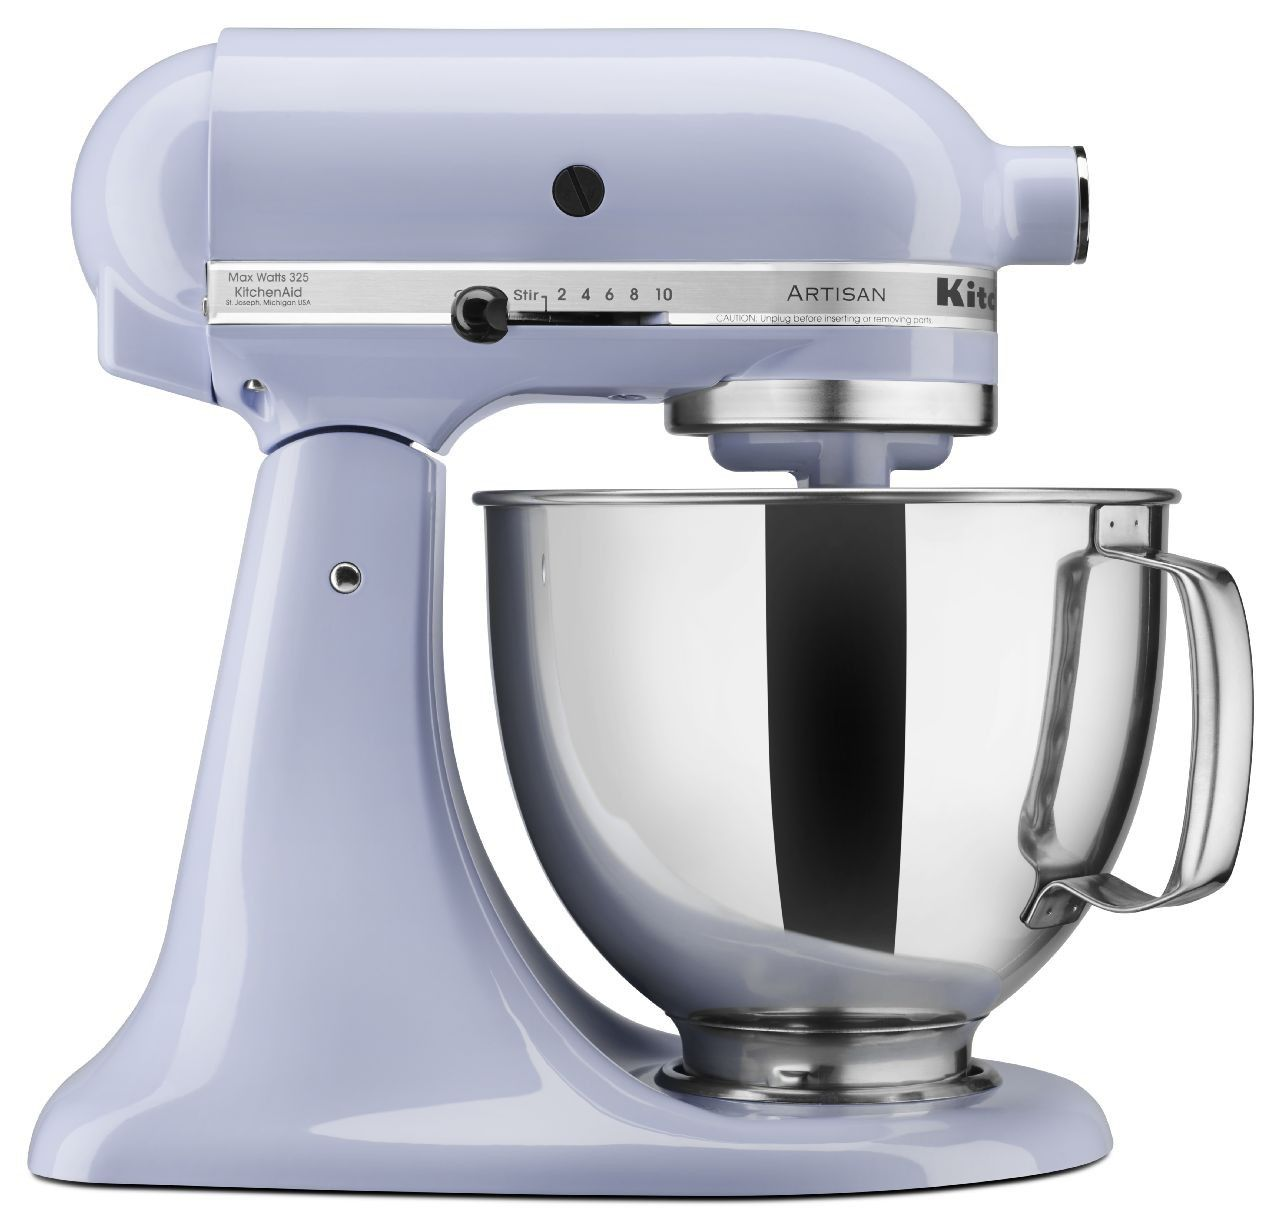 KitchenAid 5Qt Artisan Mixer - Lavender Cream | Electric ...